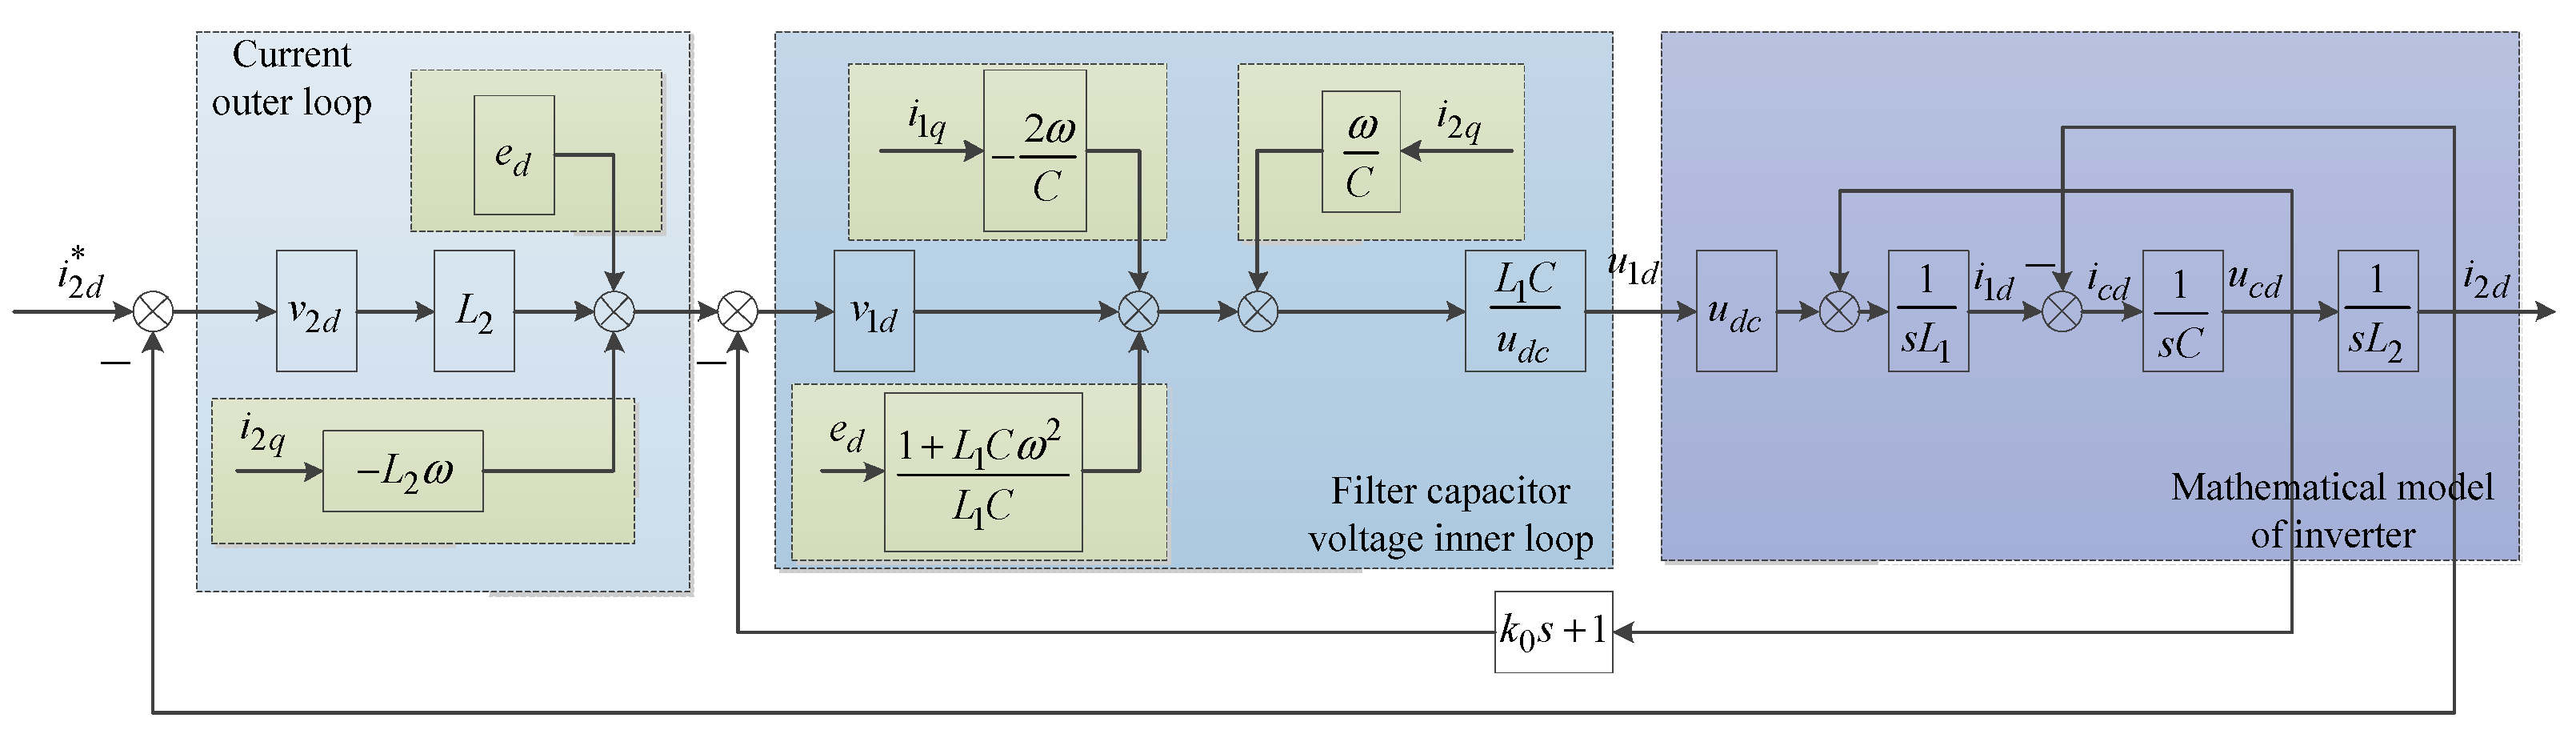 Electronics | Free Full-Text | Control Design of LCL Type